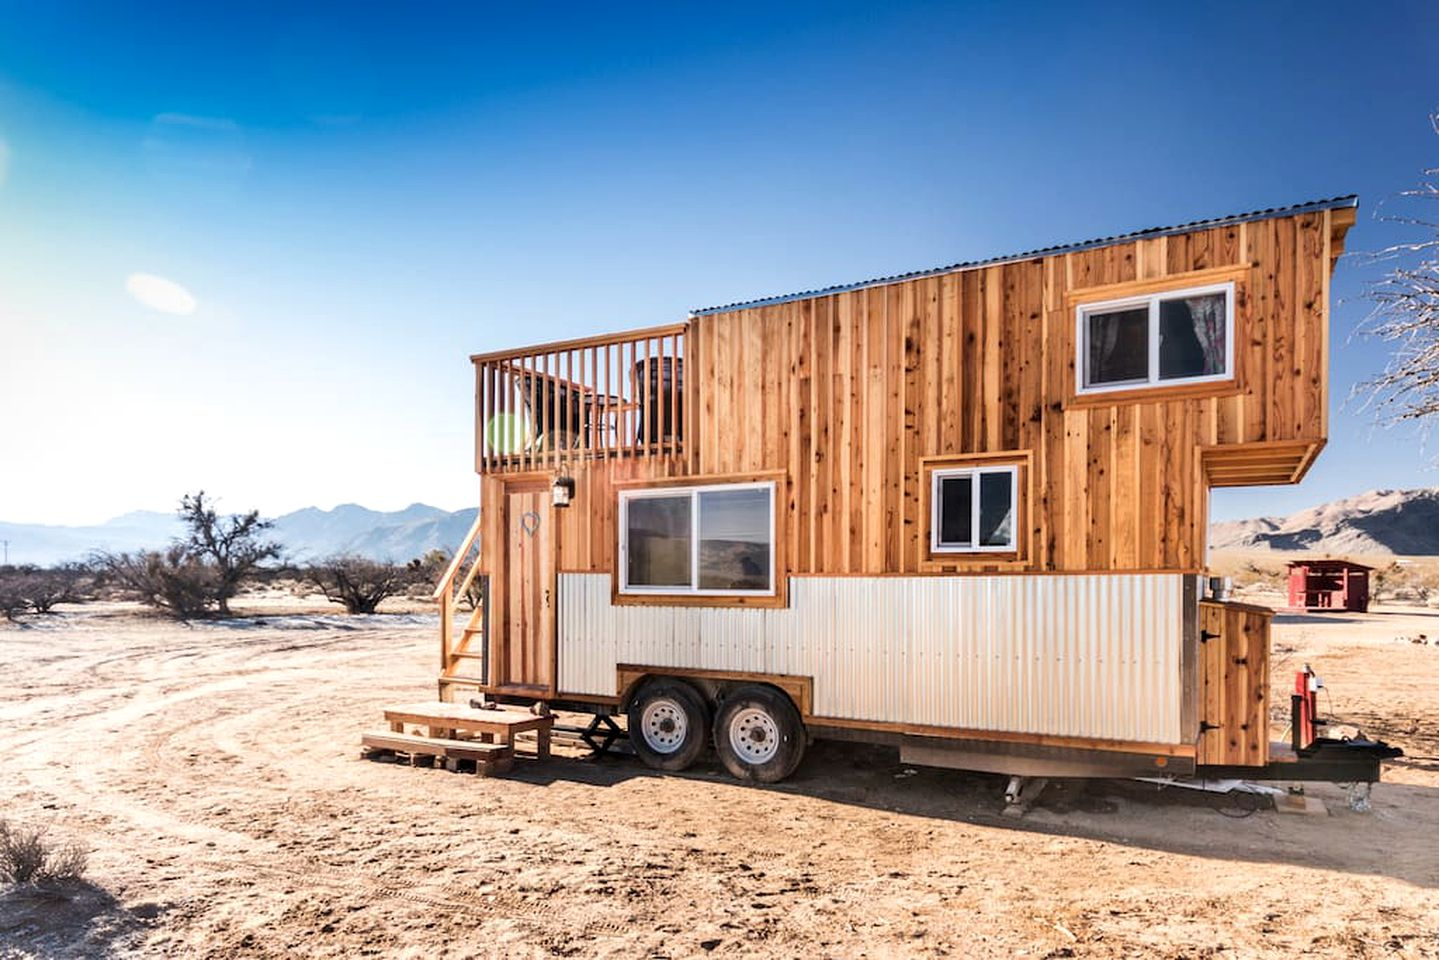 Tiny house rental on a dude ranch in Nevada.